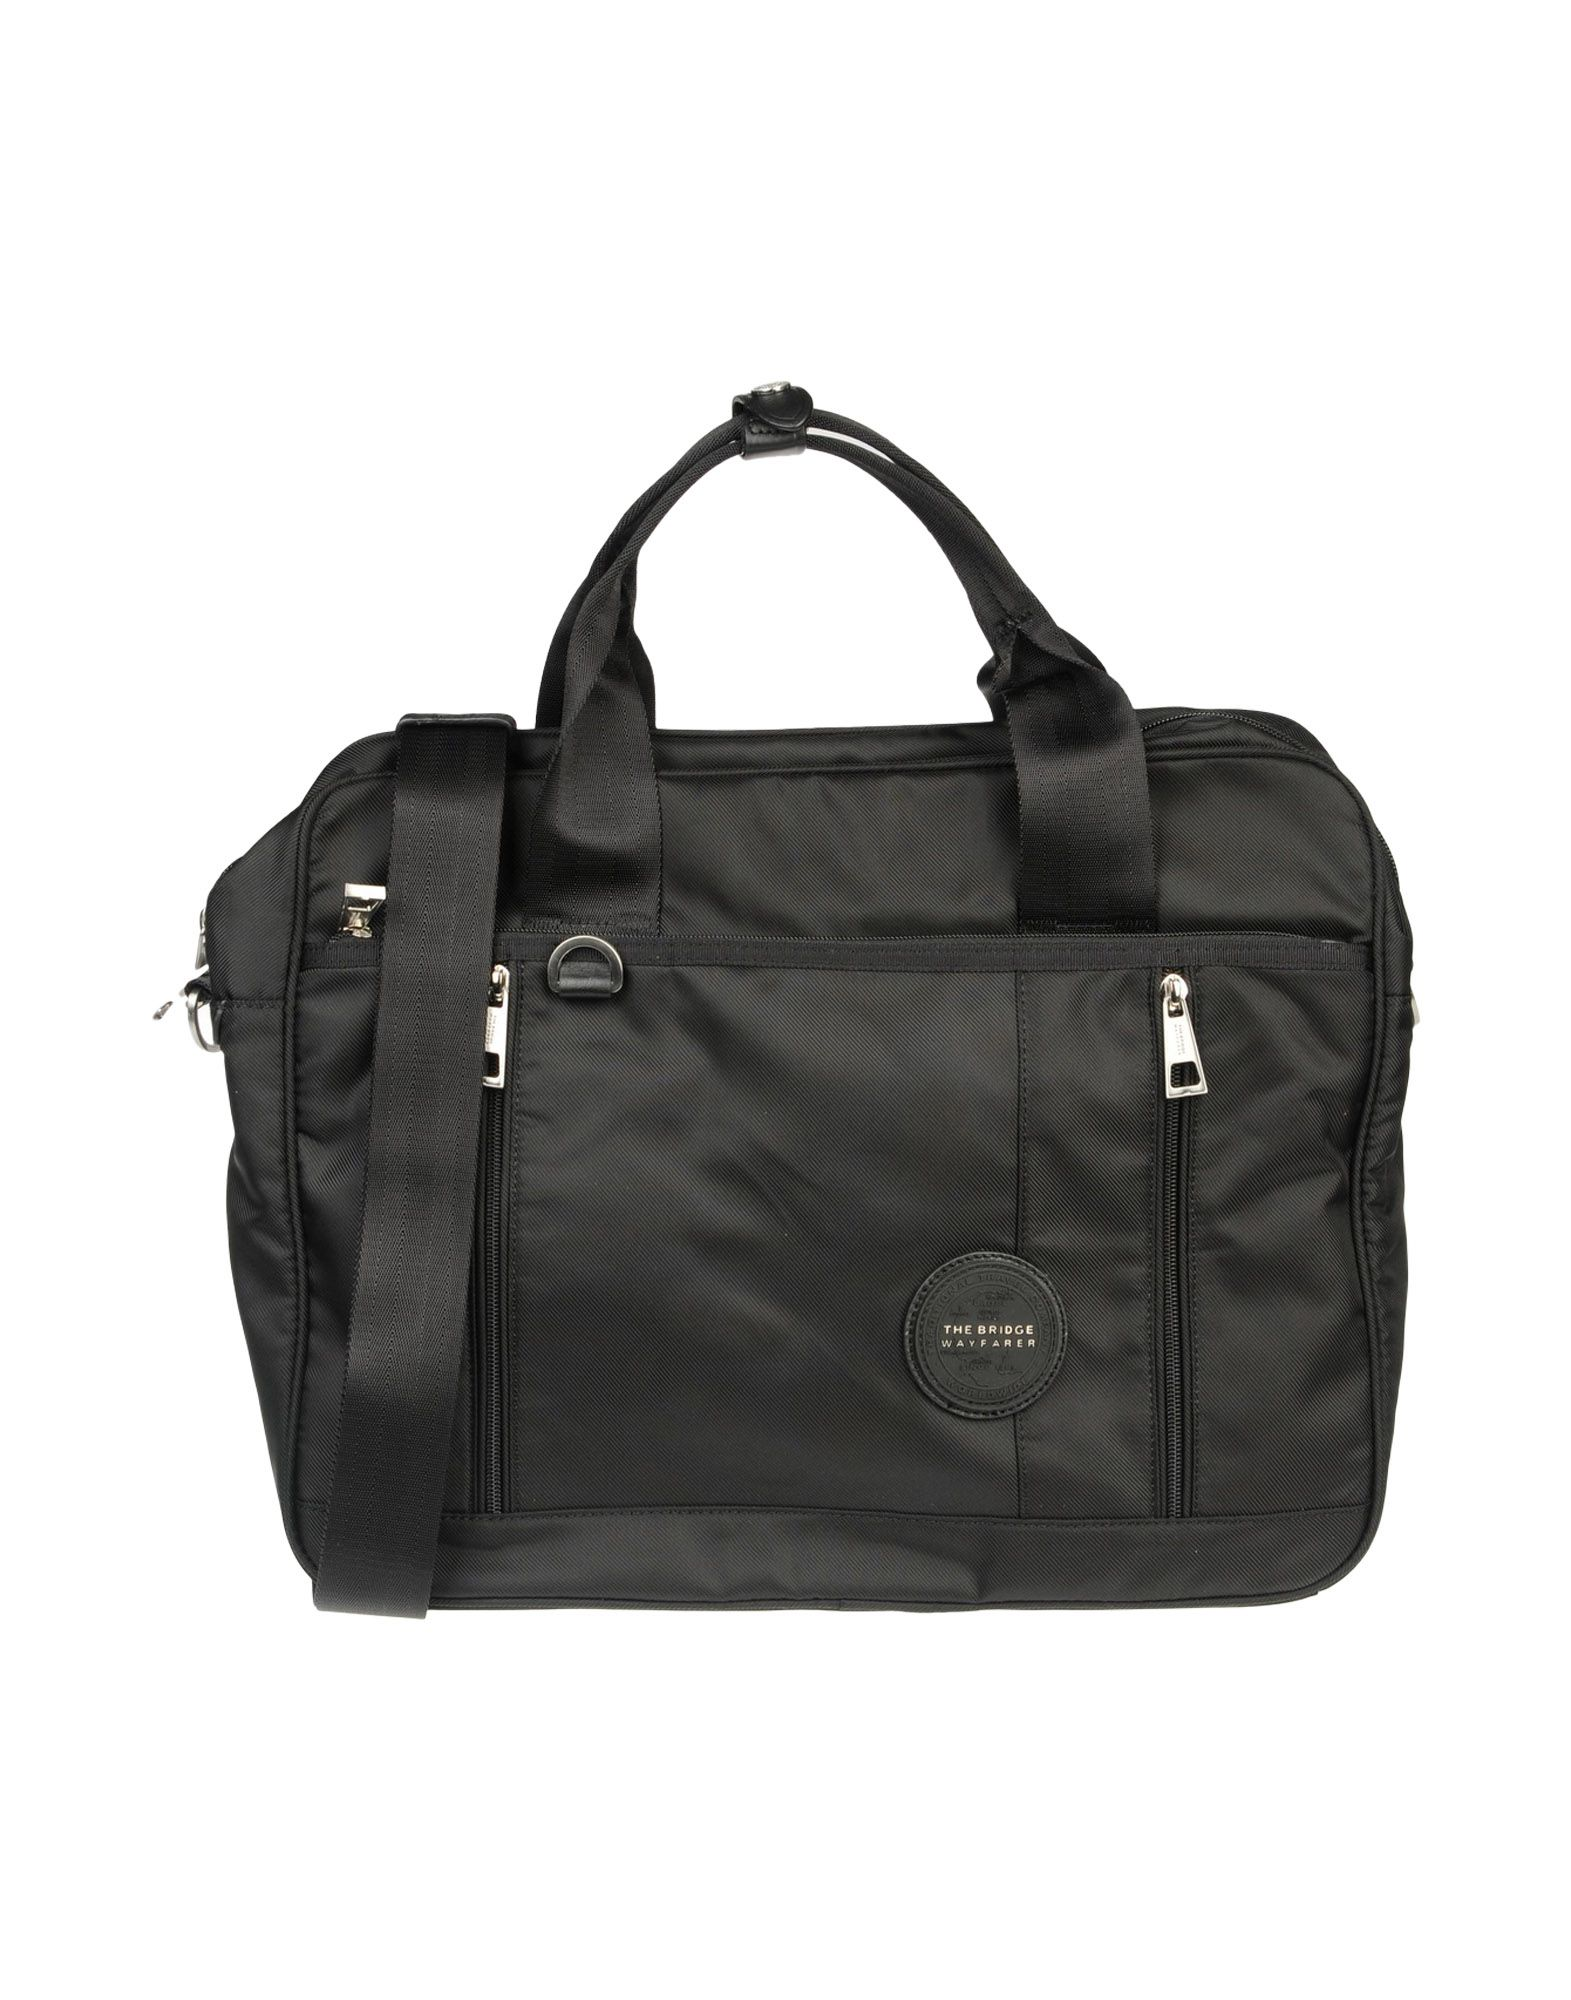 eeacf81e7c Wayfarer The Bridge Work Bag - Men Wayfarer The Bridge Work Bags ...